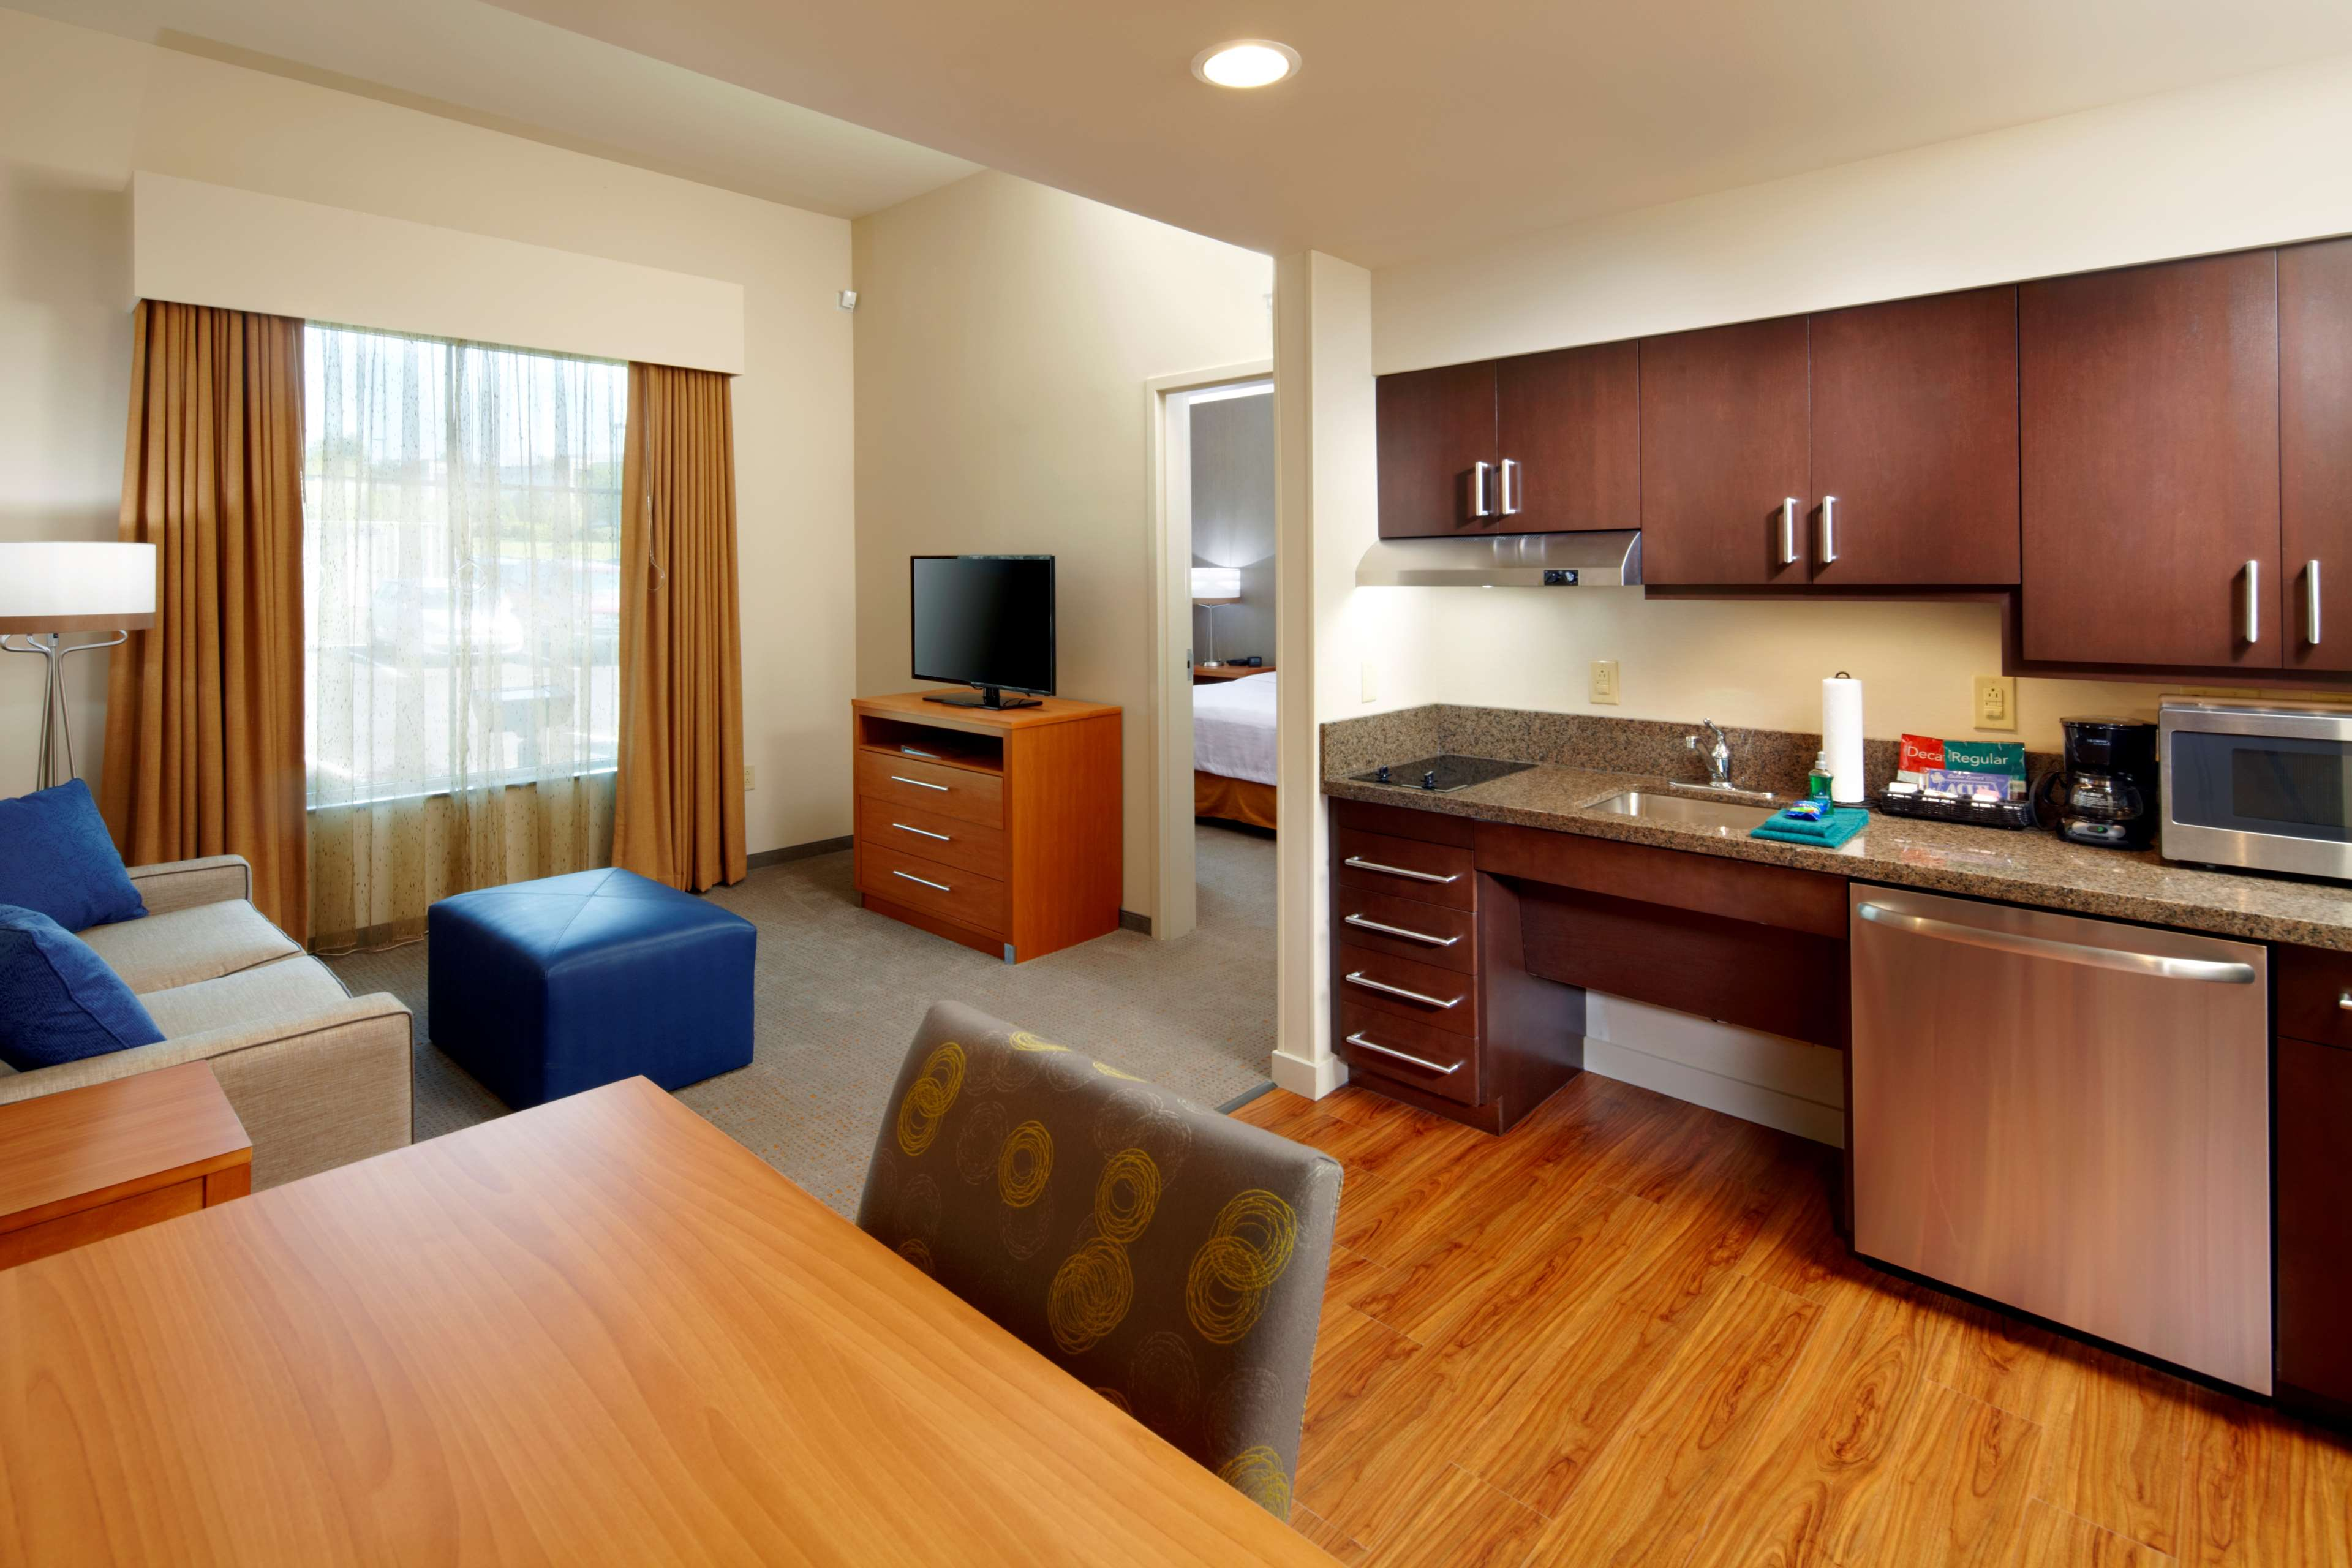 Homewood Suites by Hilton Pittsburgh Airport Robinson Mall Area PA image 14